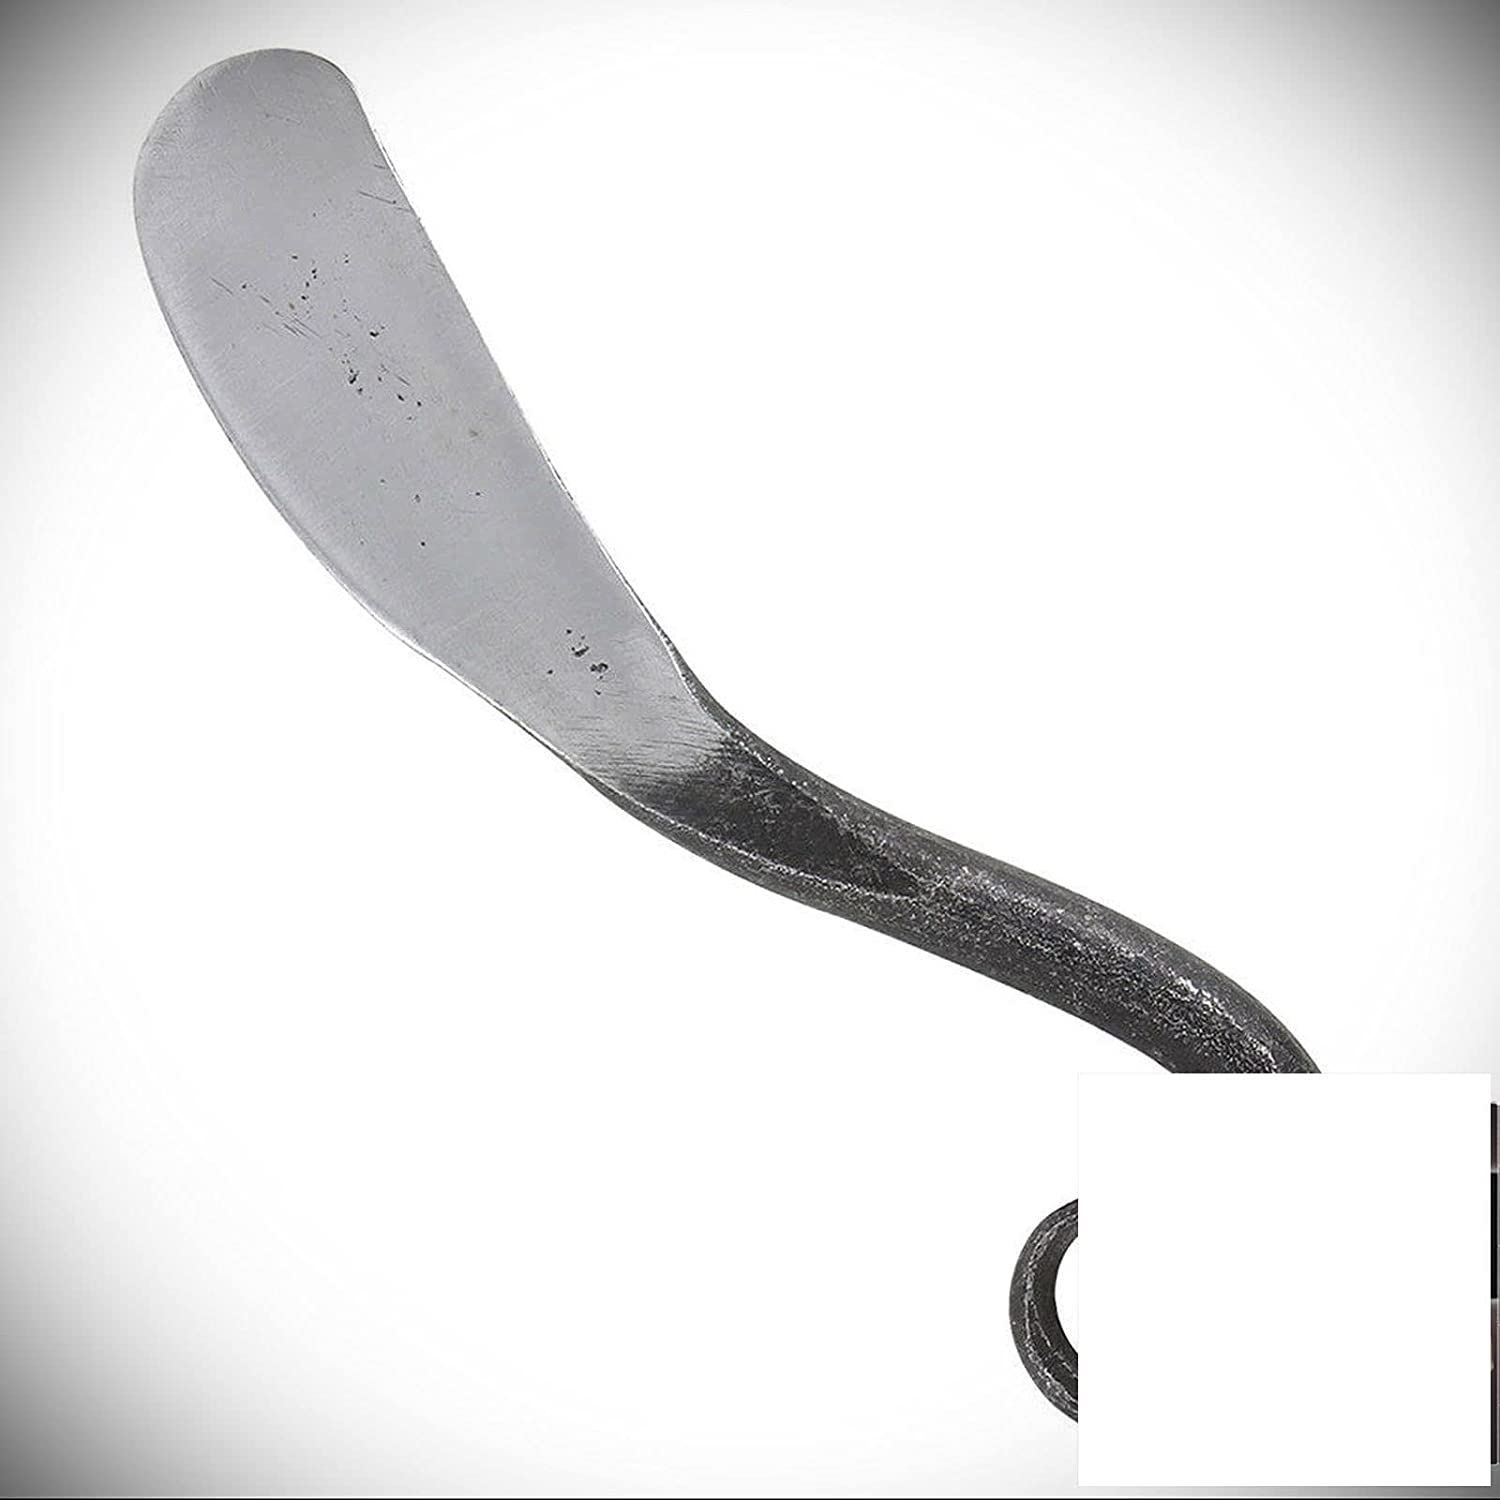 Hand Crafted Ceremonial Swirl Large-scale sale Direct store Ye Iron Stainle Razor Olde Shaving